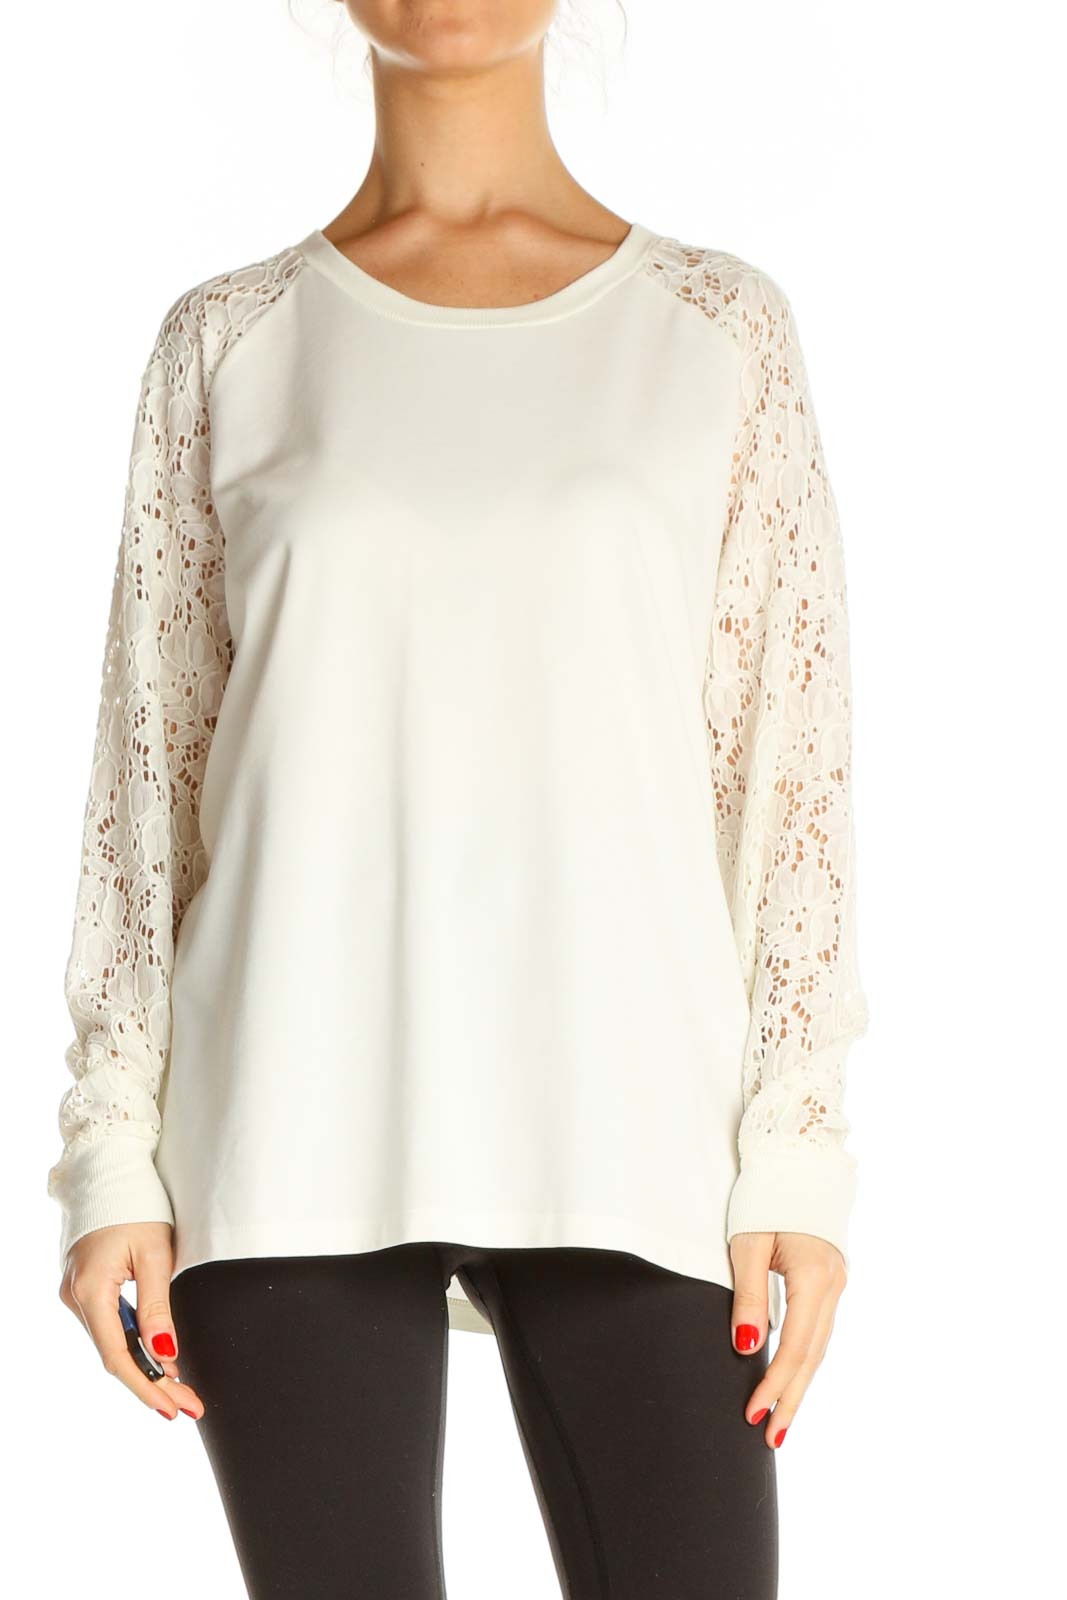 White Lace All Day Wear Sweater Front